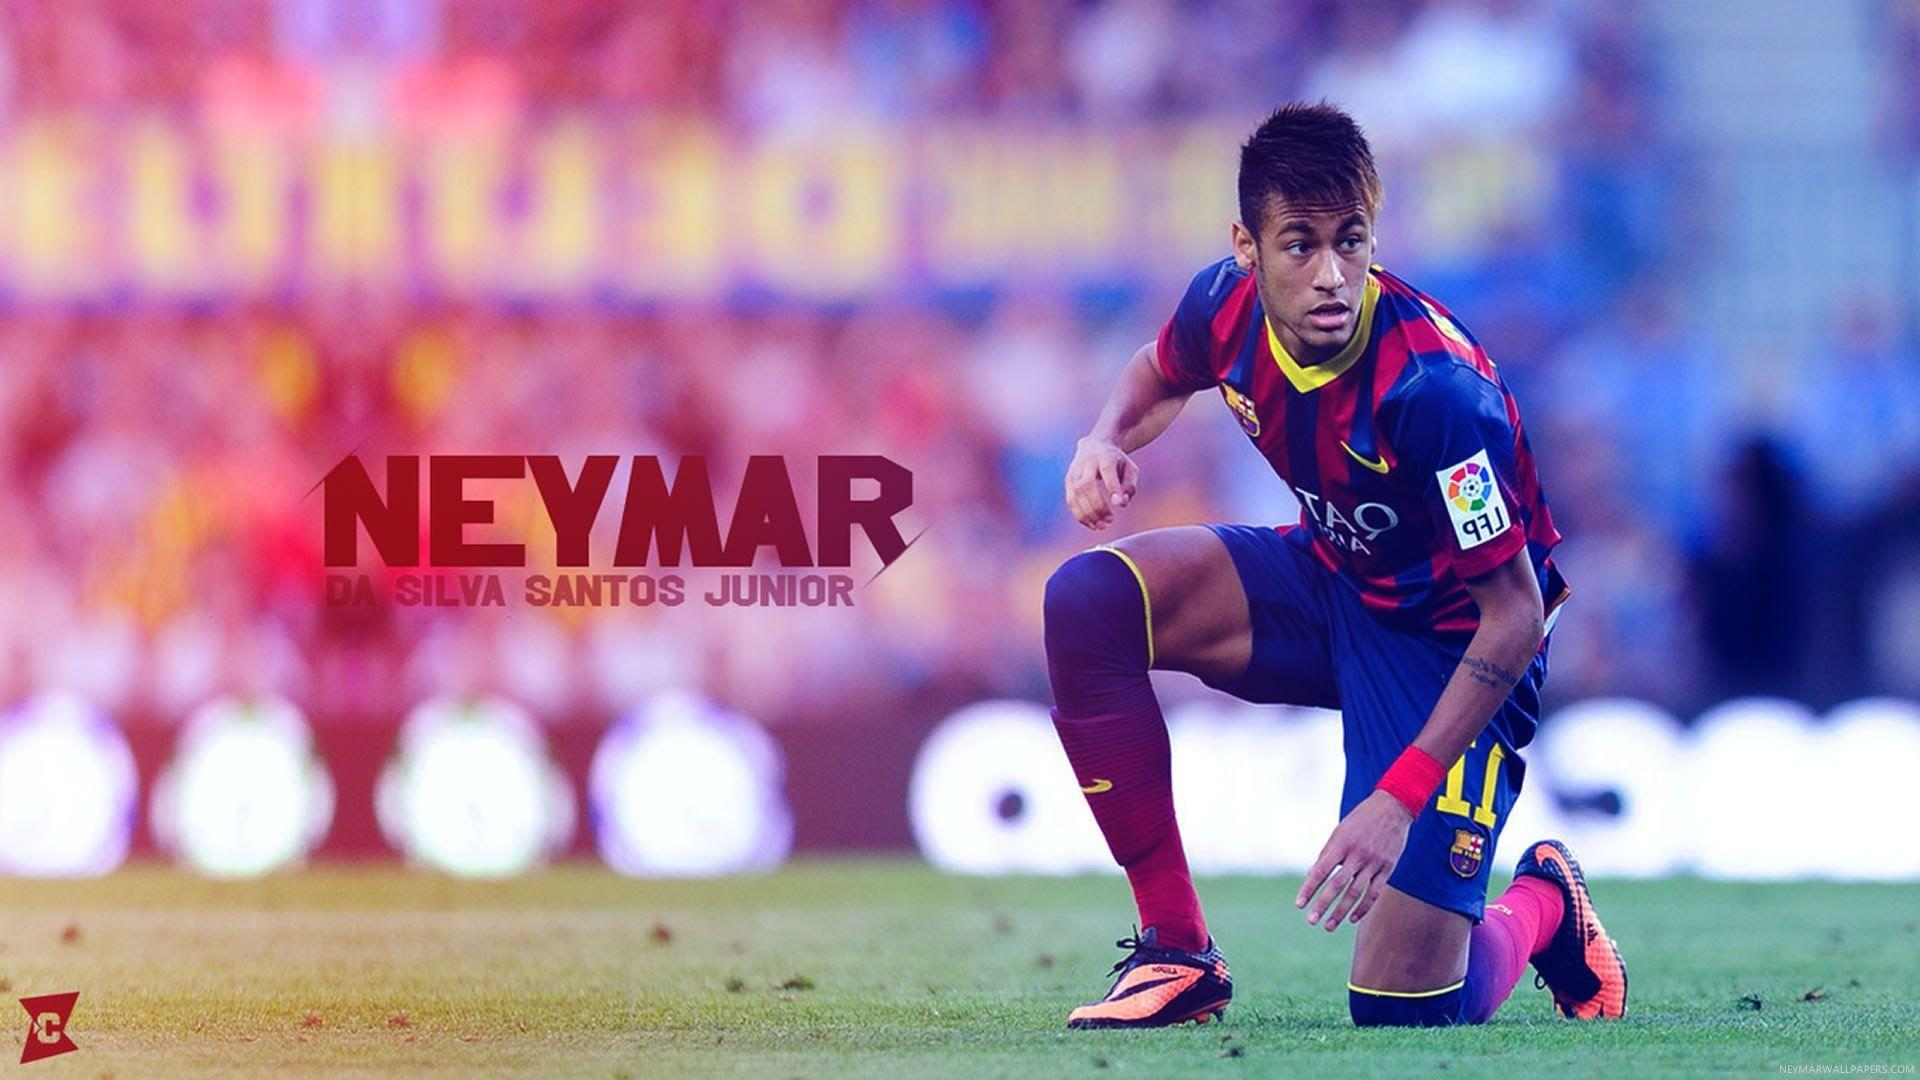 Neymar Jr Wallpaper 2015 1080p - WallpaperSafari